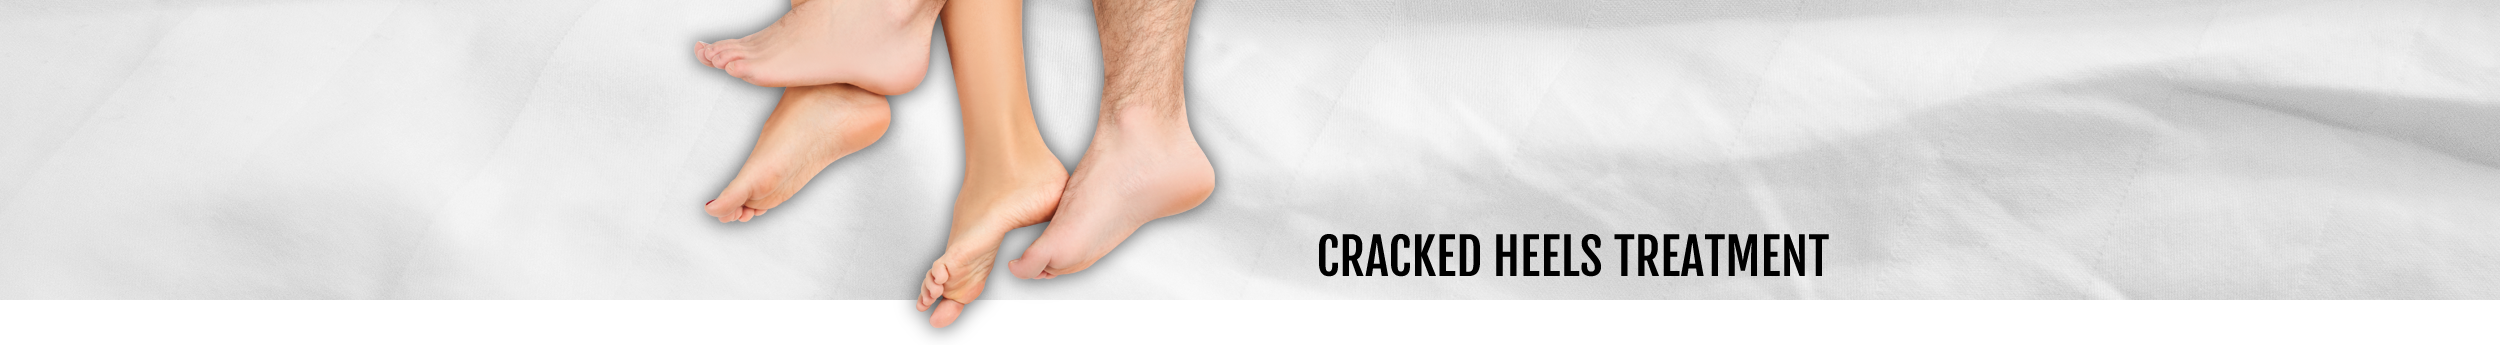 Cracked Heels treatment header for the Walk IN Foot Clinic in central London